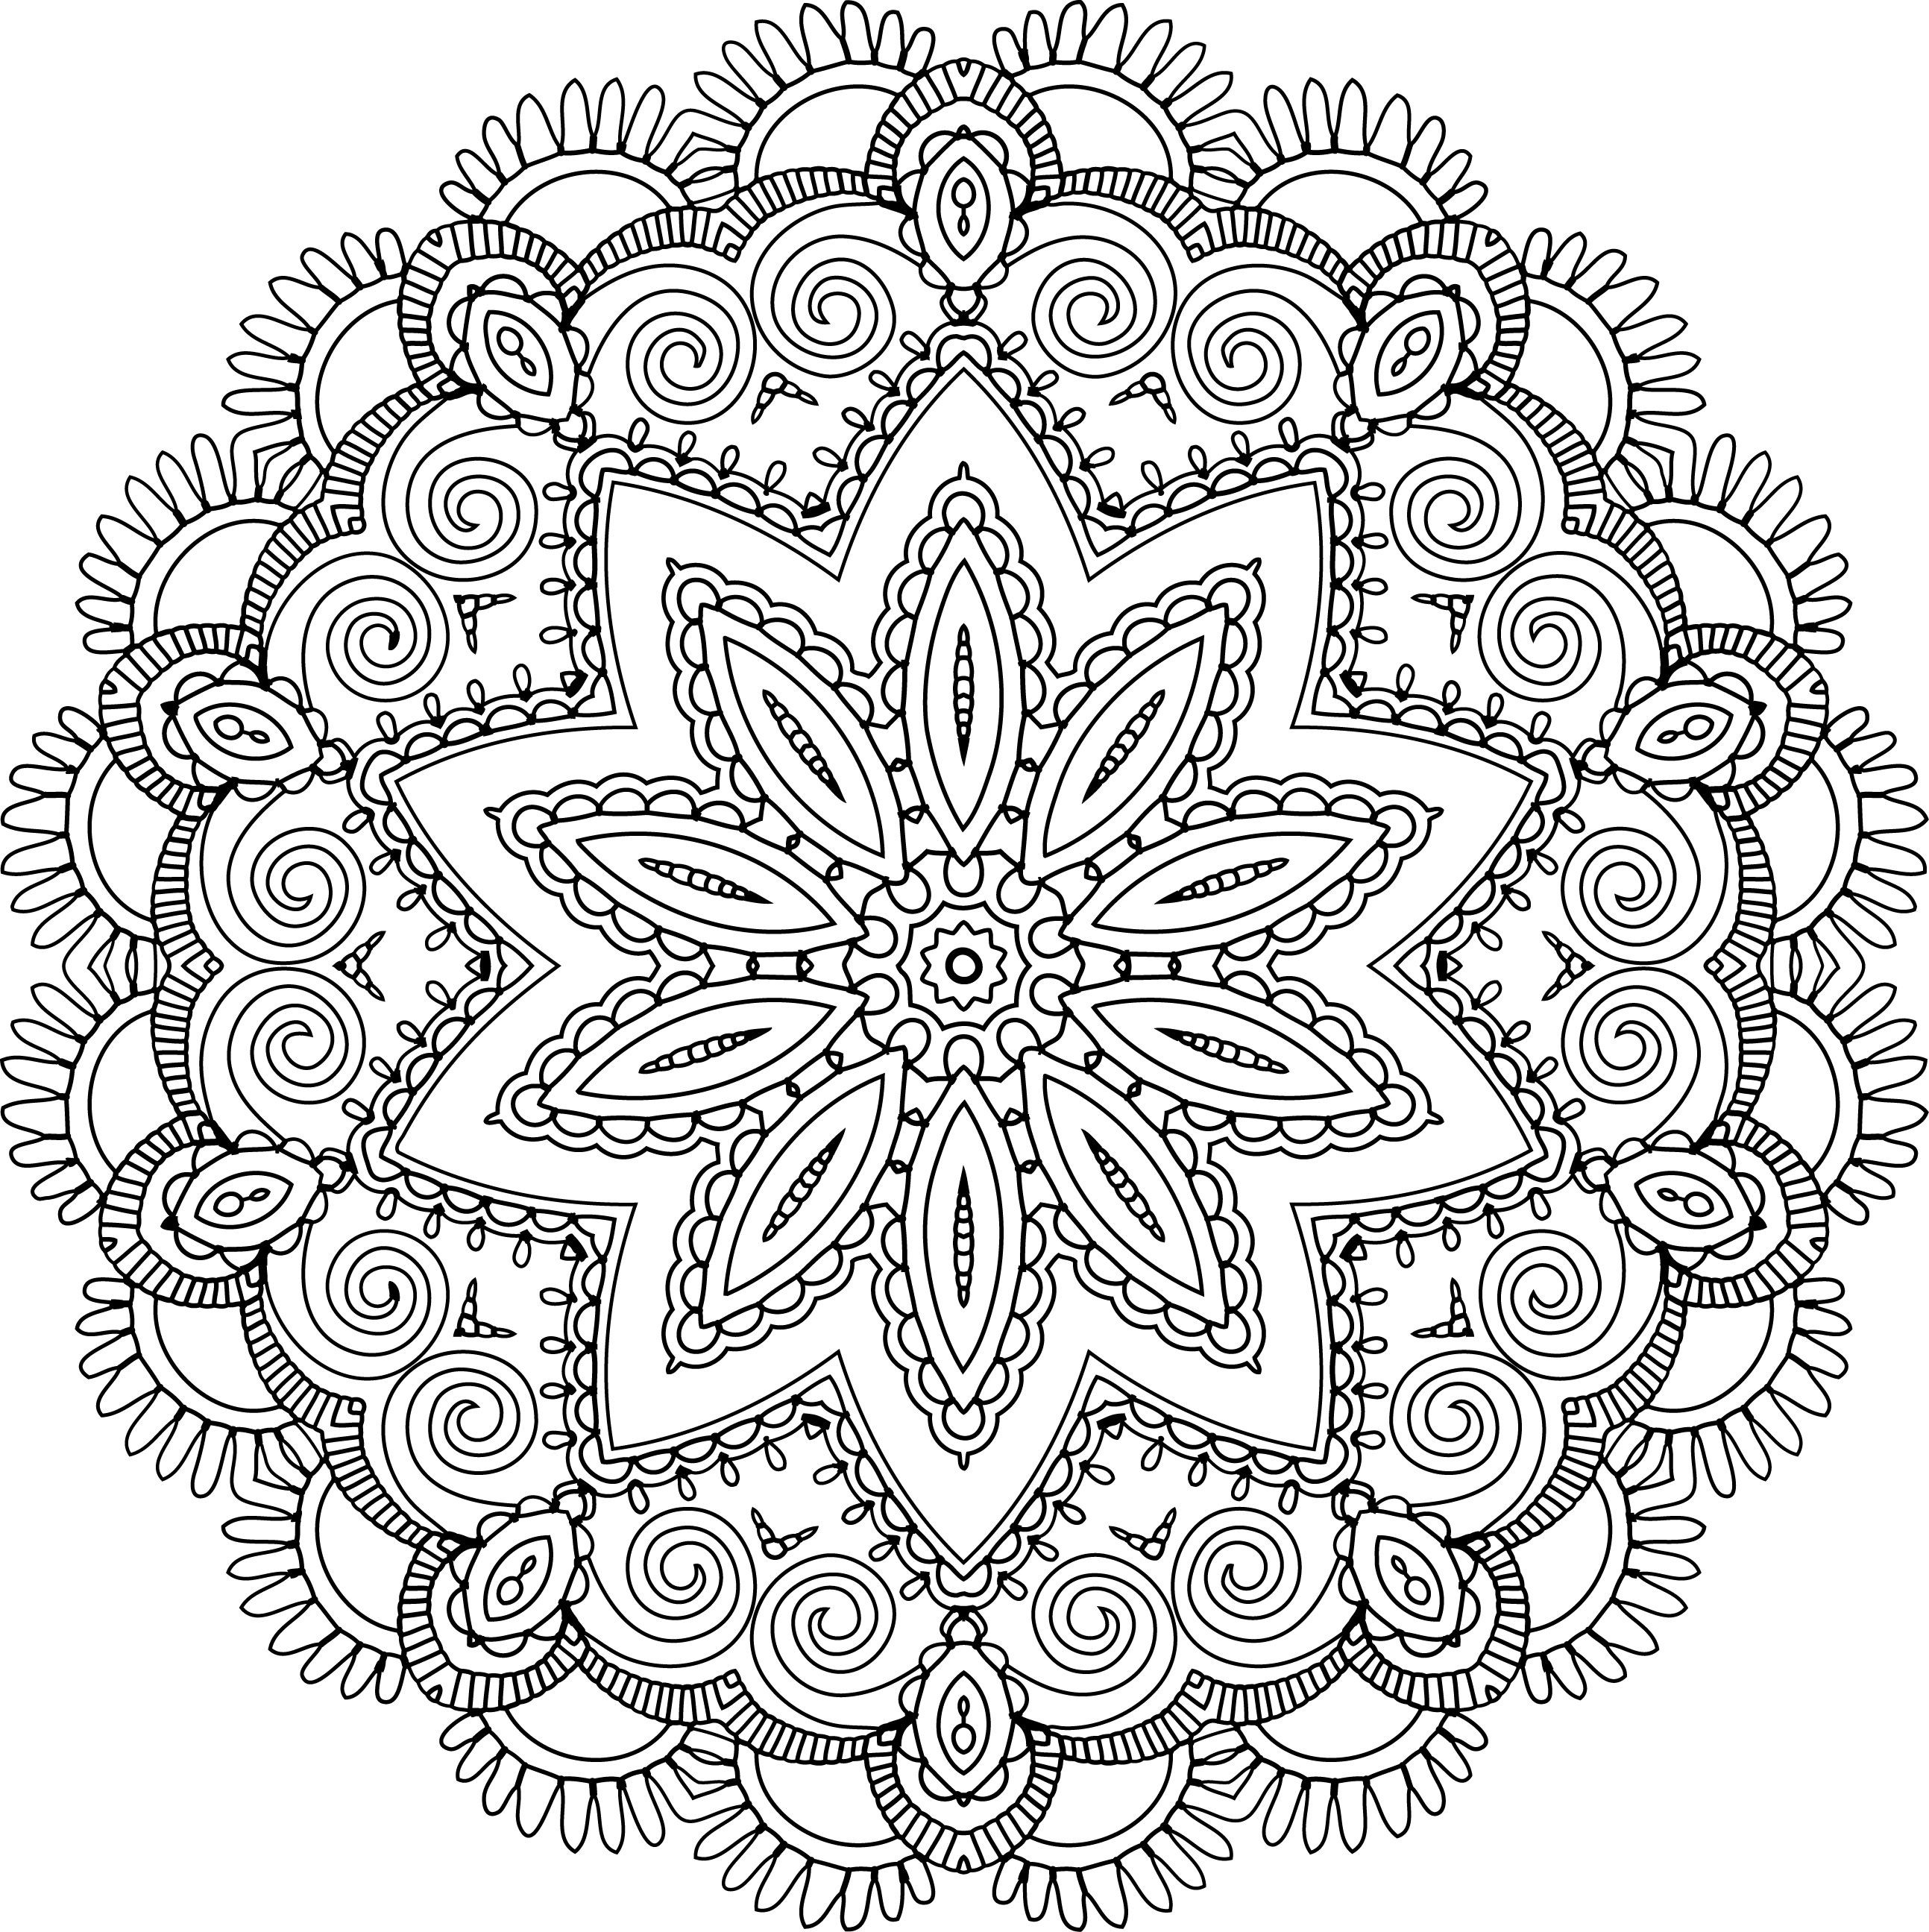 Best ideas about Michaels Adult Coloring Books . Save or Pin Adult Coloring Books Now.